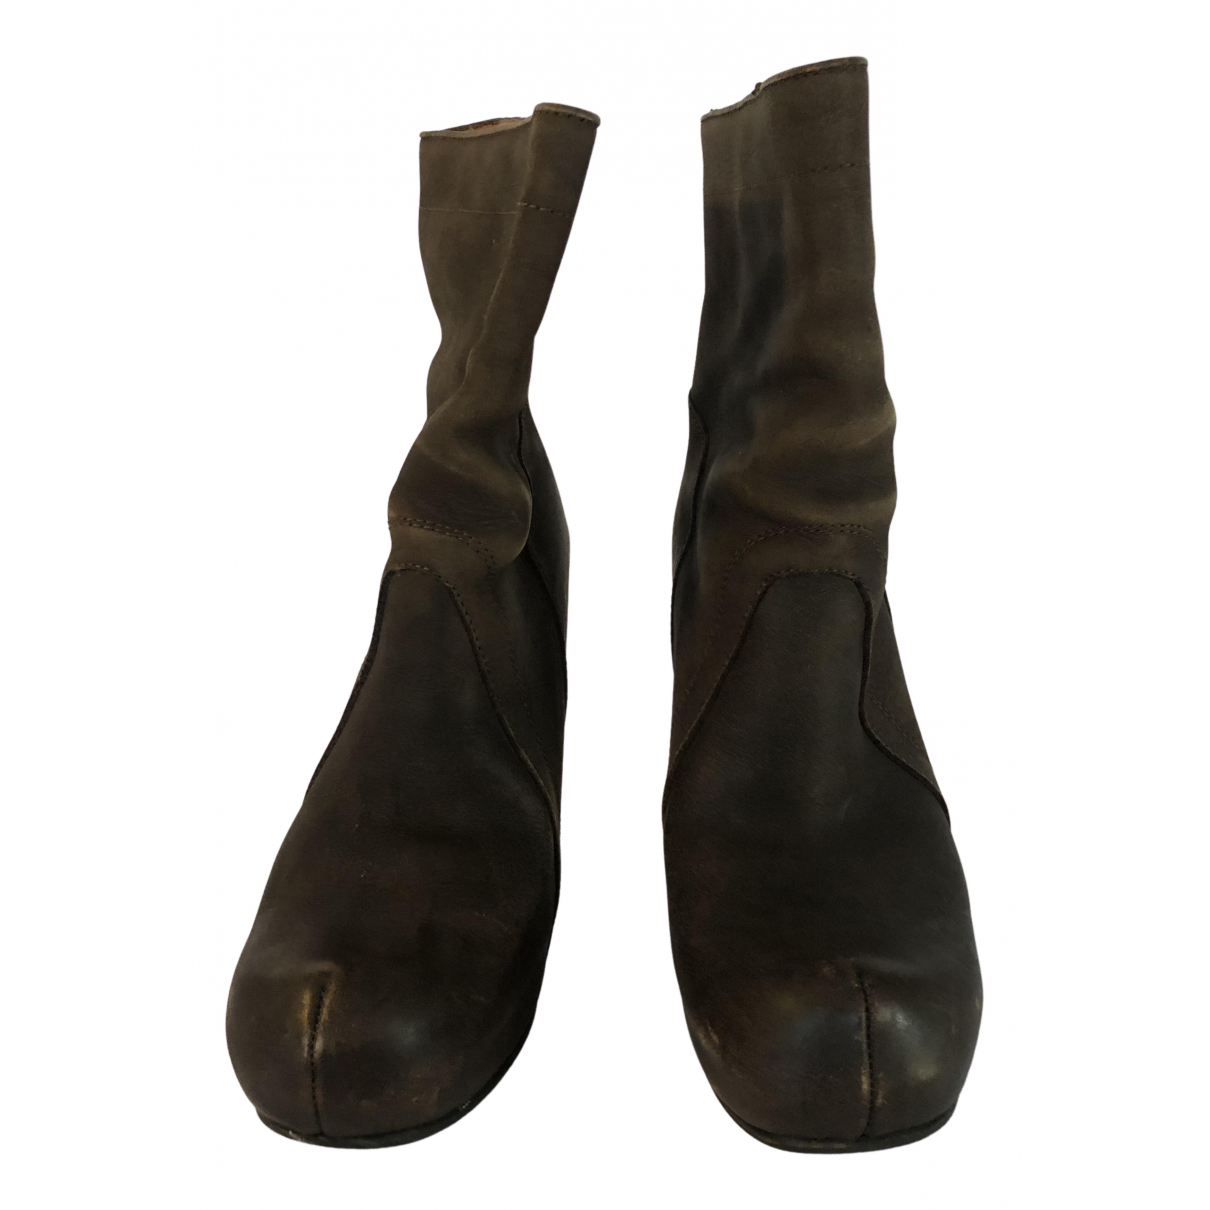 Rick Owens N Brown Leather Ankle boots for Women 38 EU